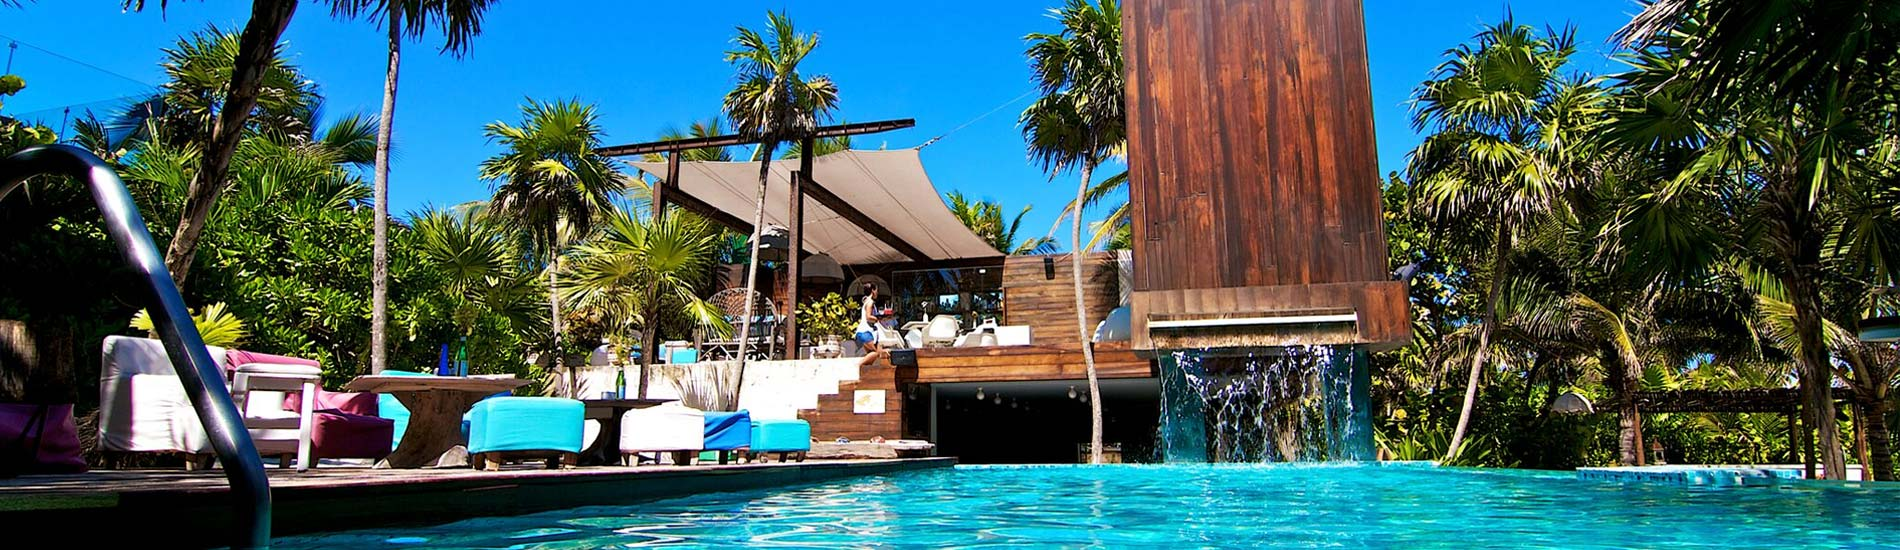 Luxury Hotels In Tulum Mexico Journey Mexico